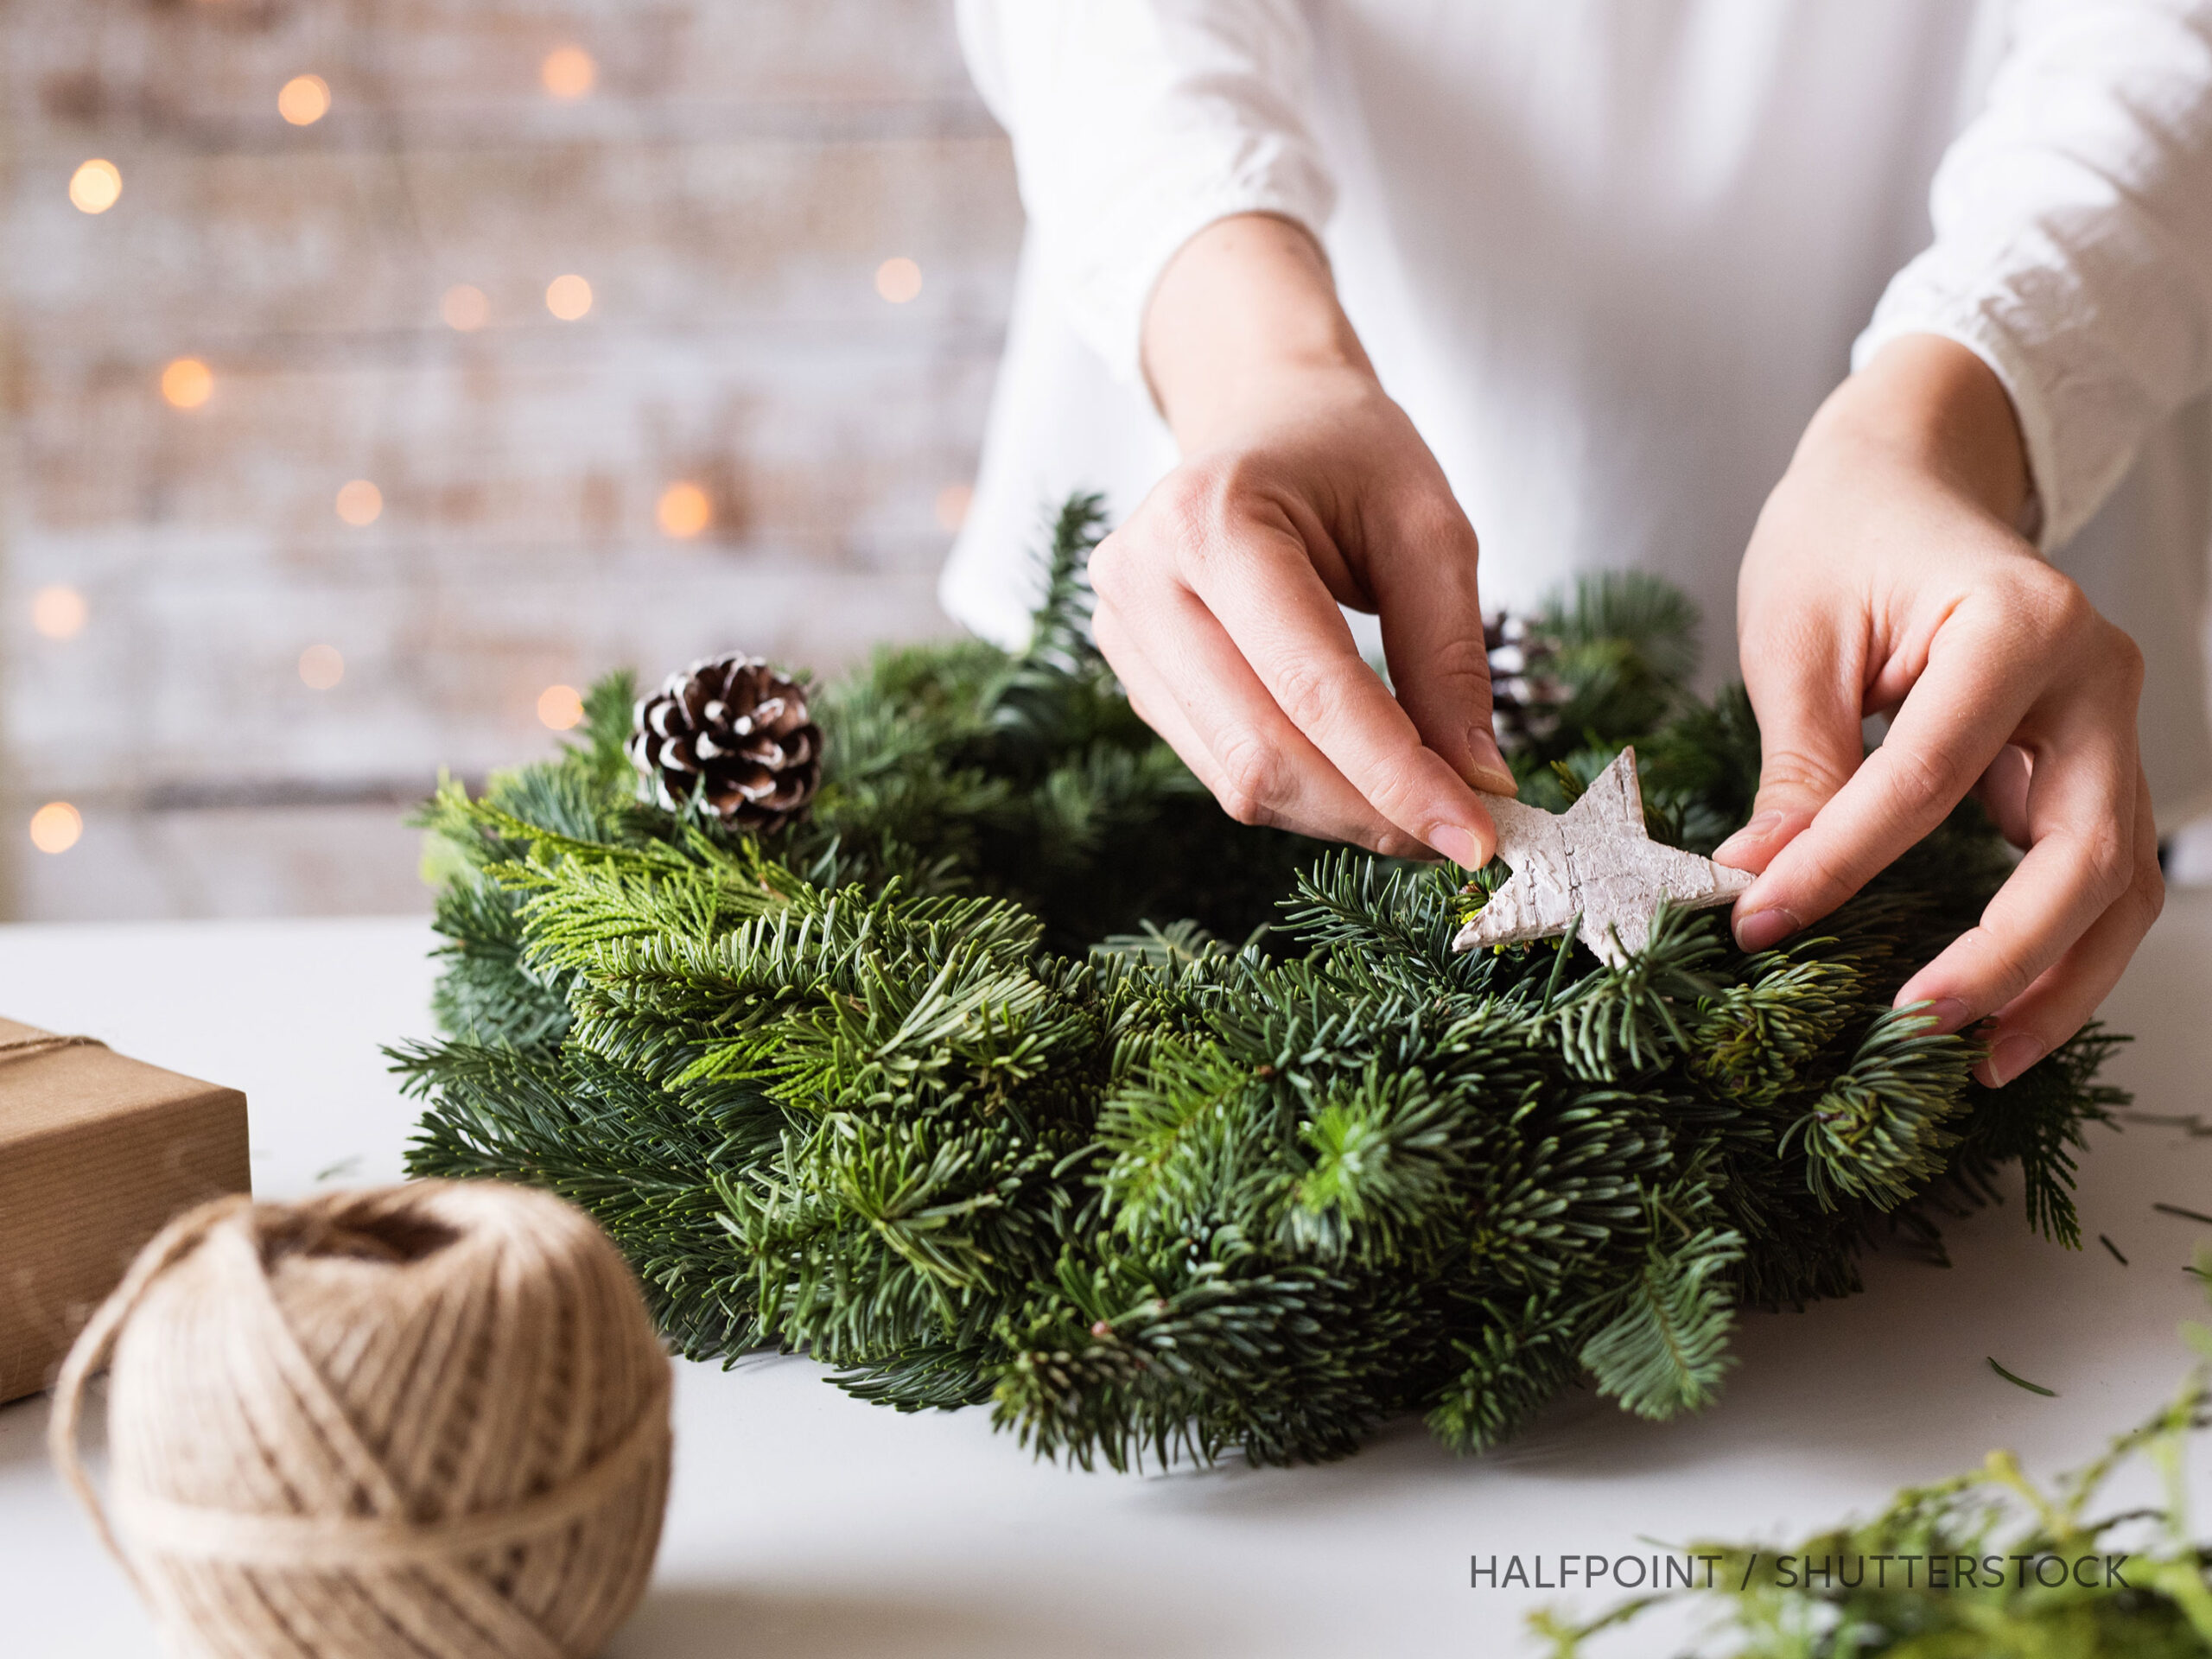 Woman making a wreath, photo